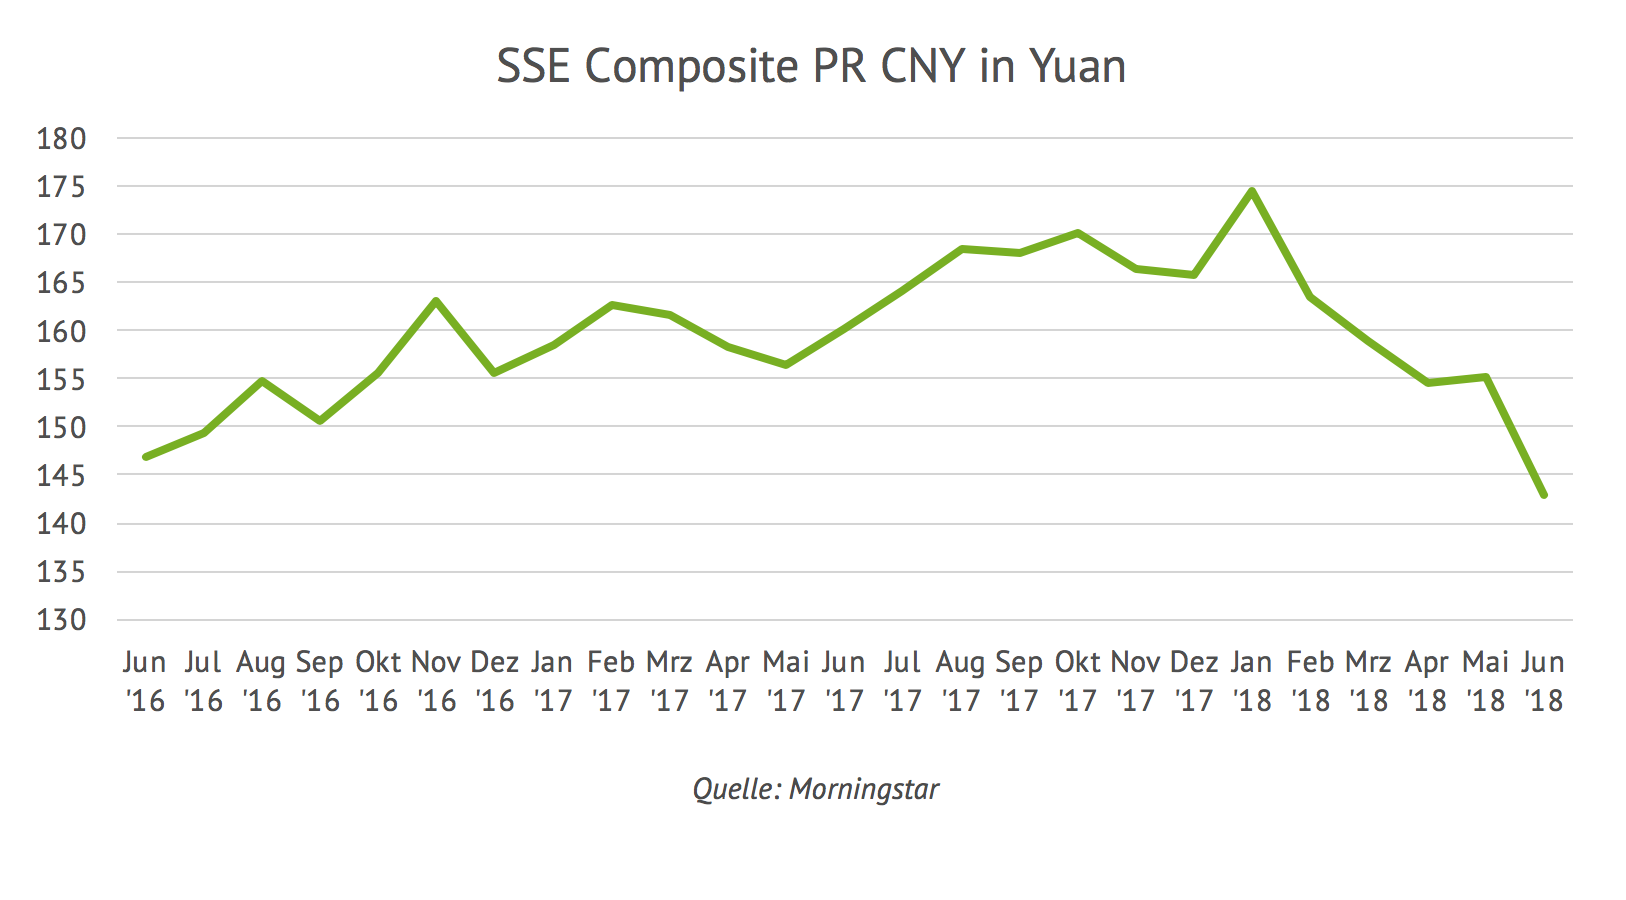 Entwicklung SSE Composite PR CNY in Yuan